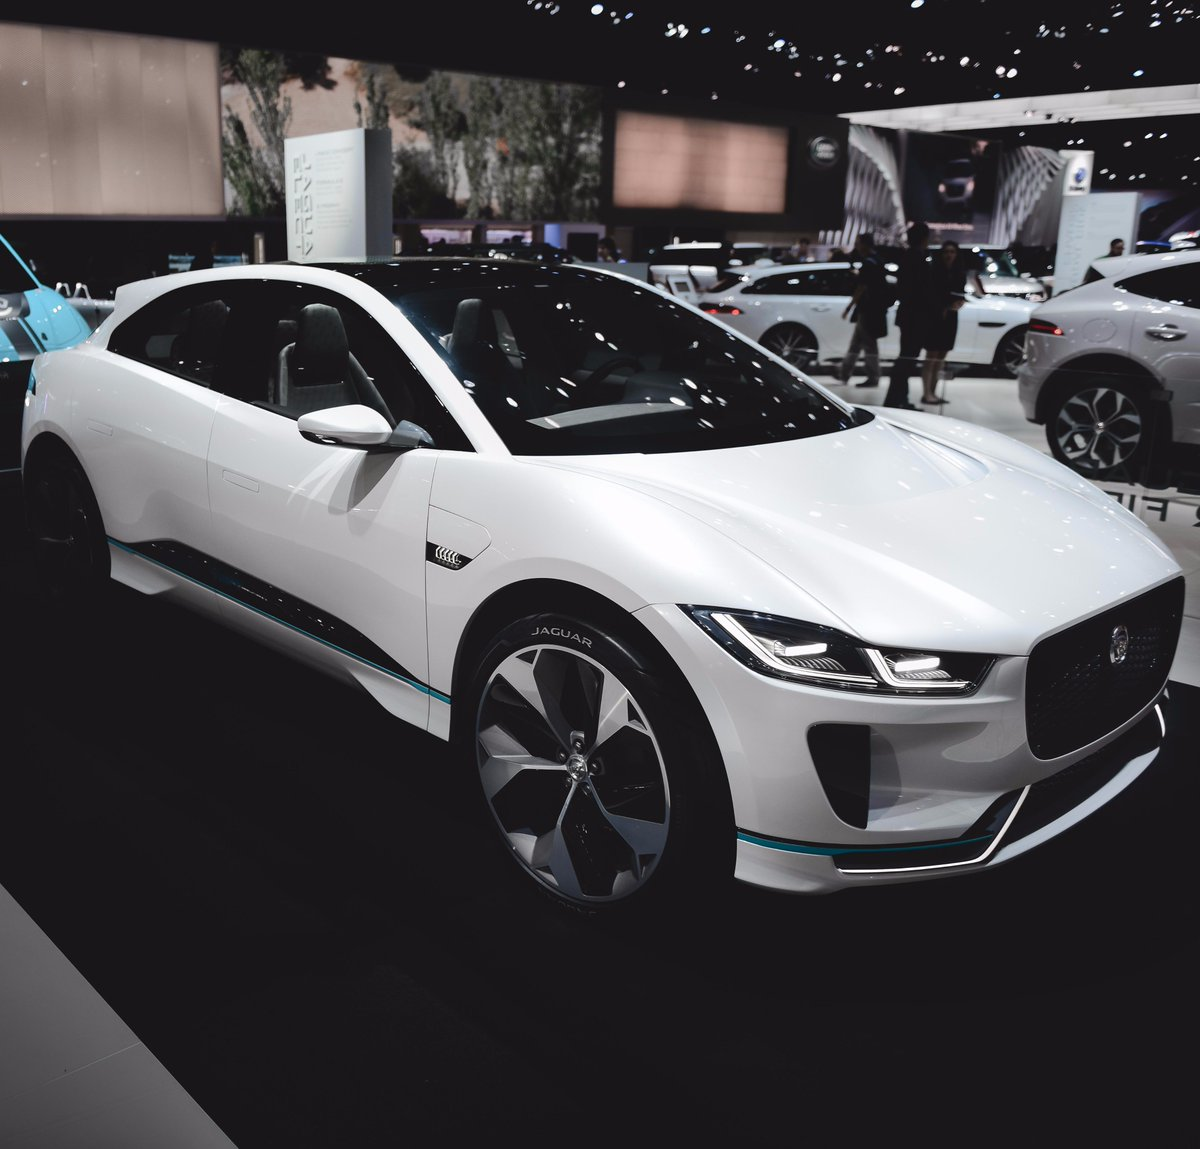 A future you can look forward to. #IPACE The @LAAutoShow is officially supercharged thanks to the I-PACE, our first all-electric vehicle ever. #LAAS Photos by: Cole Younger https://t.co/PnW5G34wN7